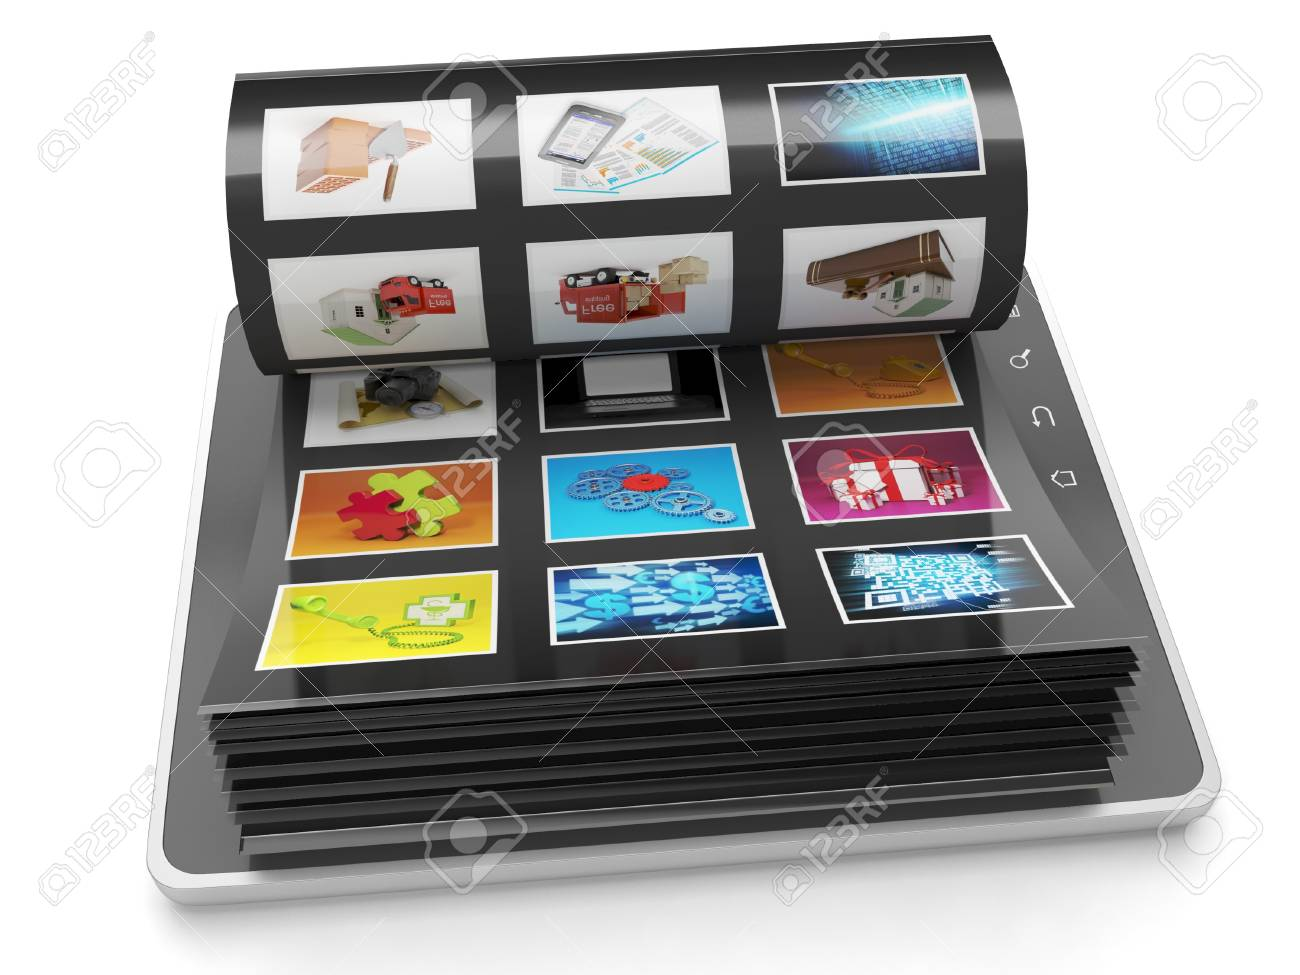 Image Gallery of the Tablet PC. Tablet PC sheets with images Stock Photo - 17365581